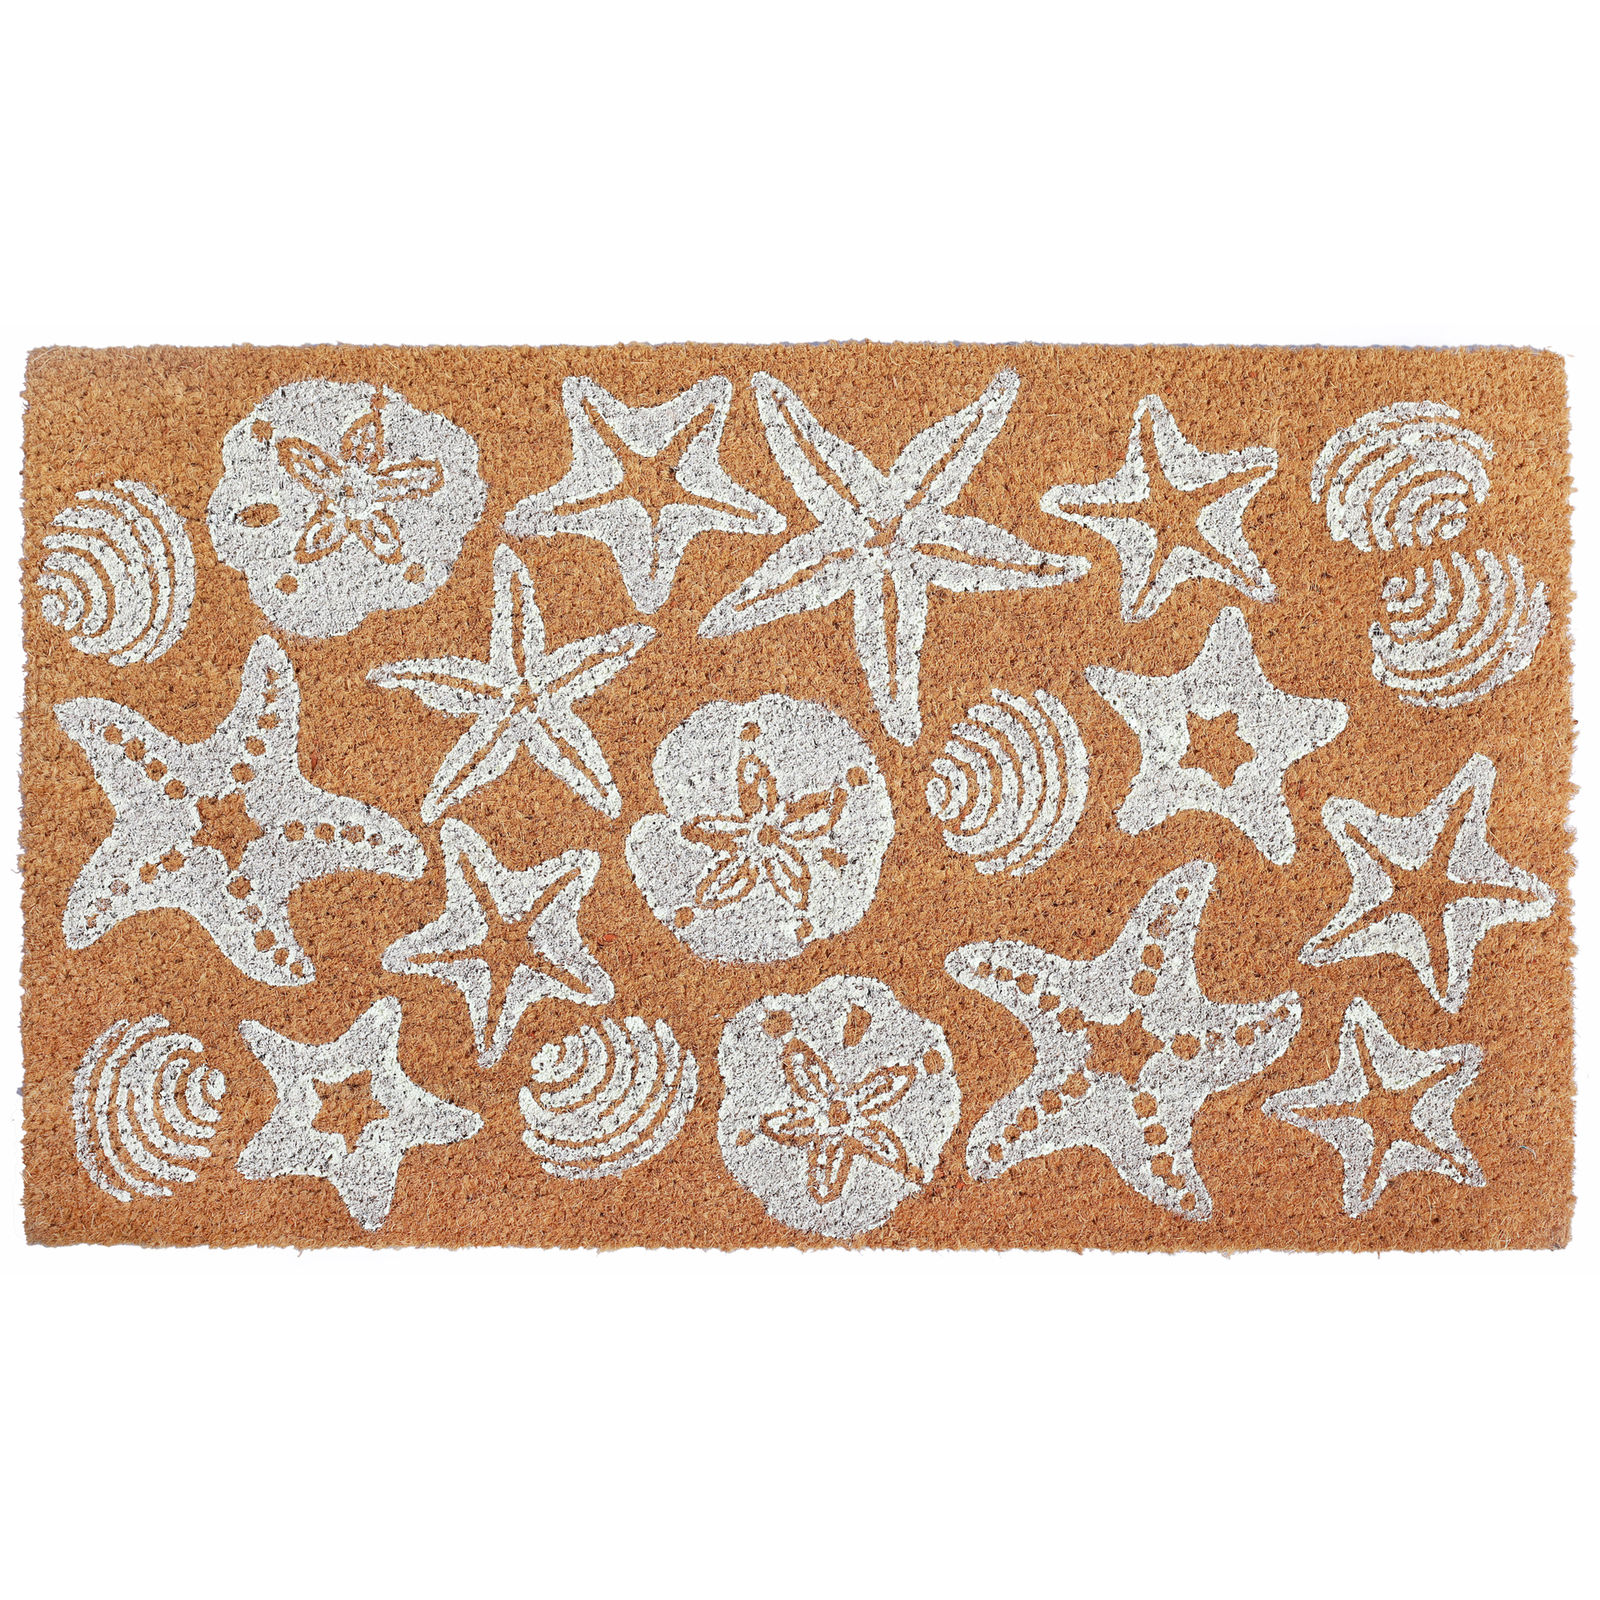 Shell Starfish Sand Dollar Coir Door Mat